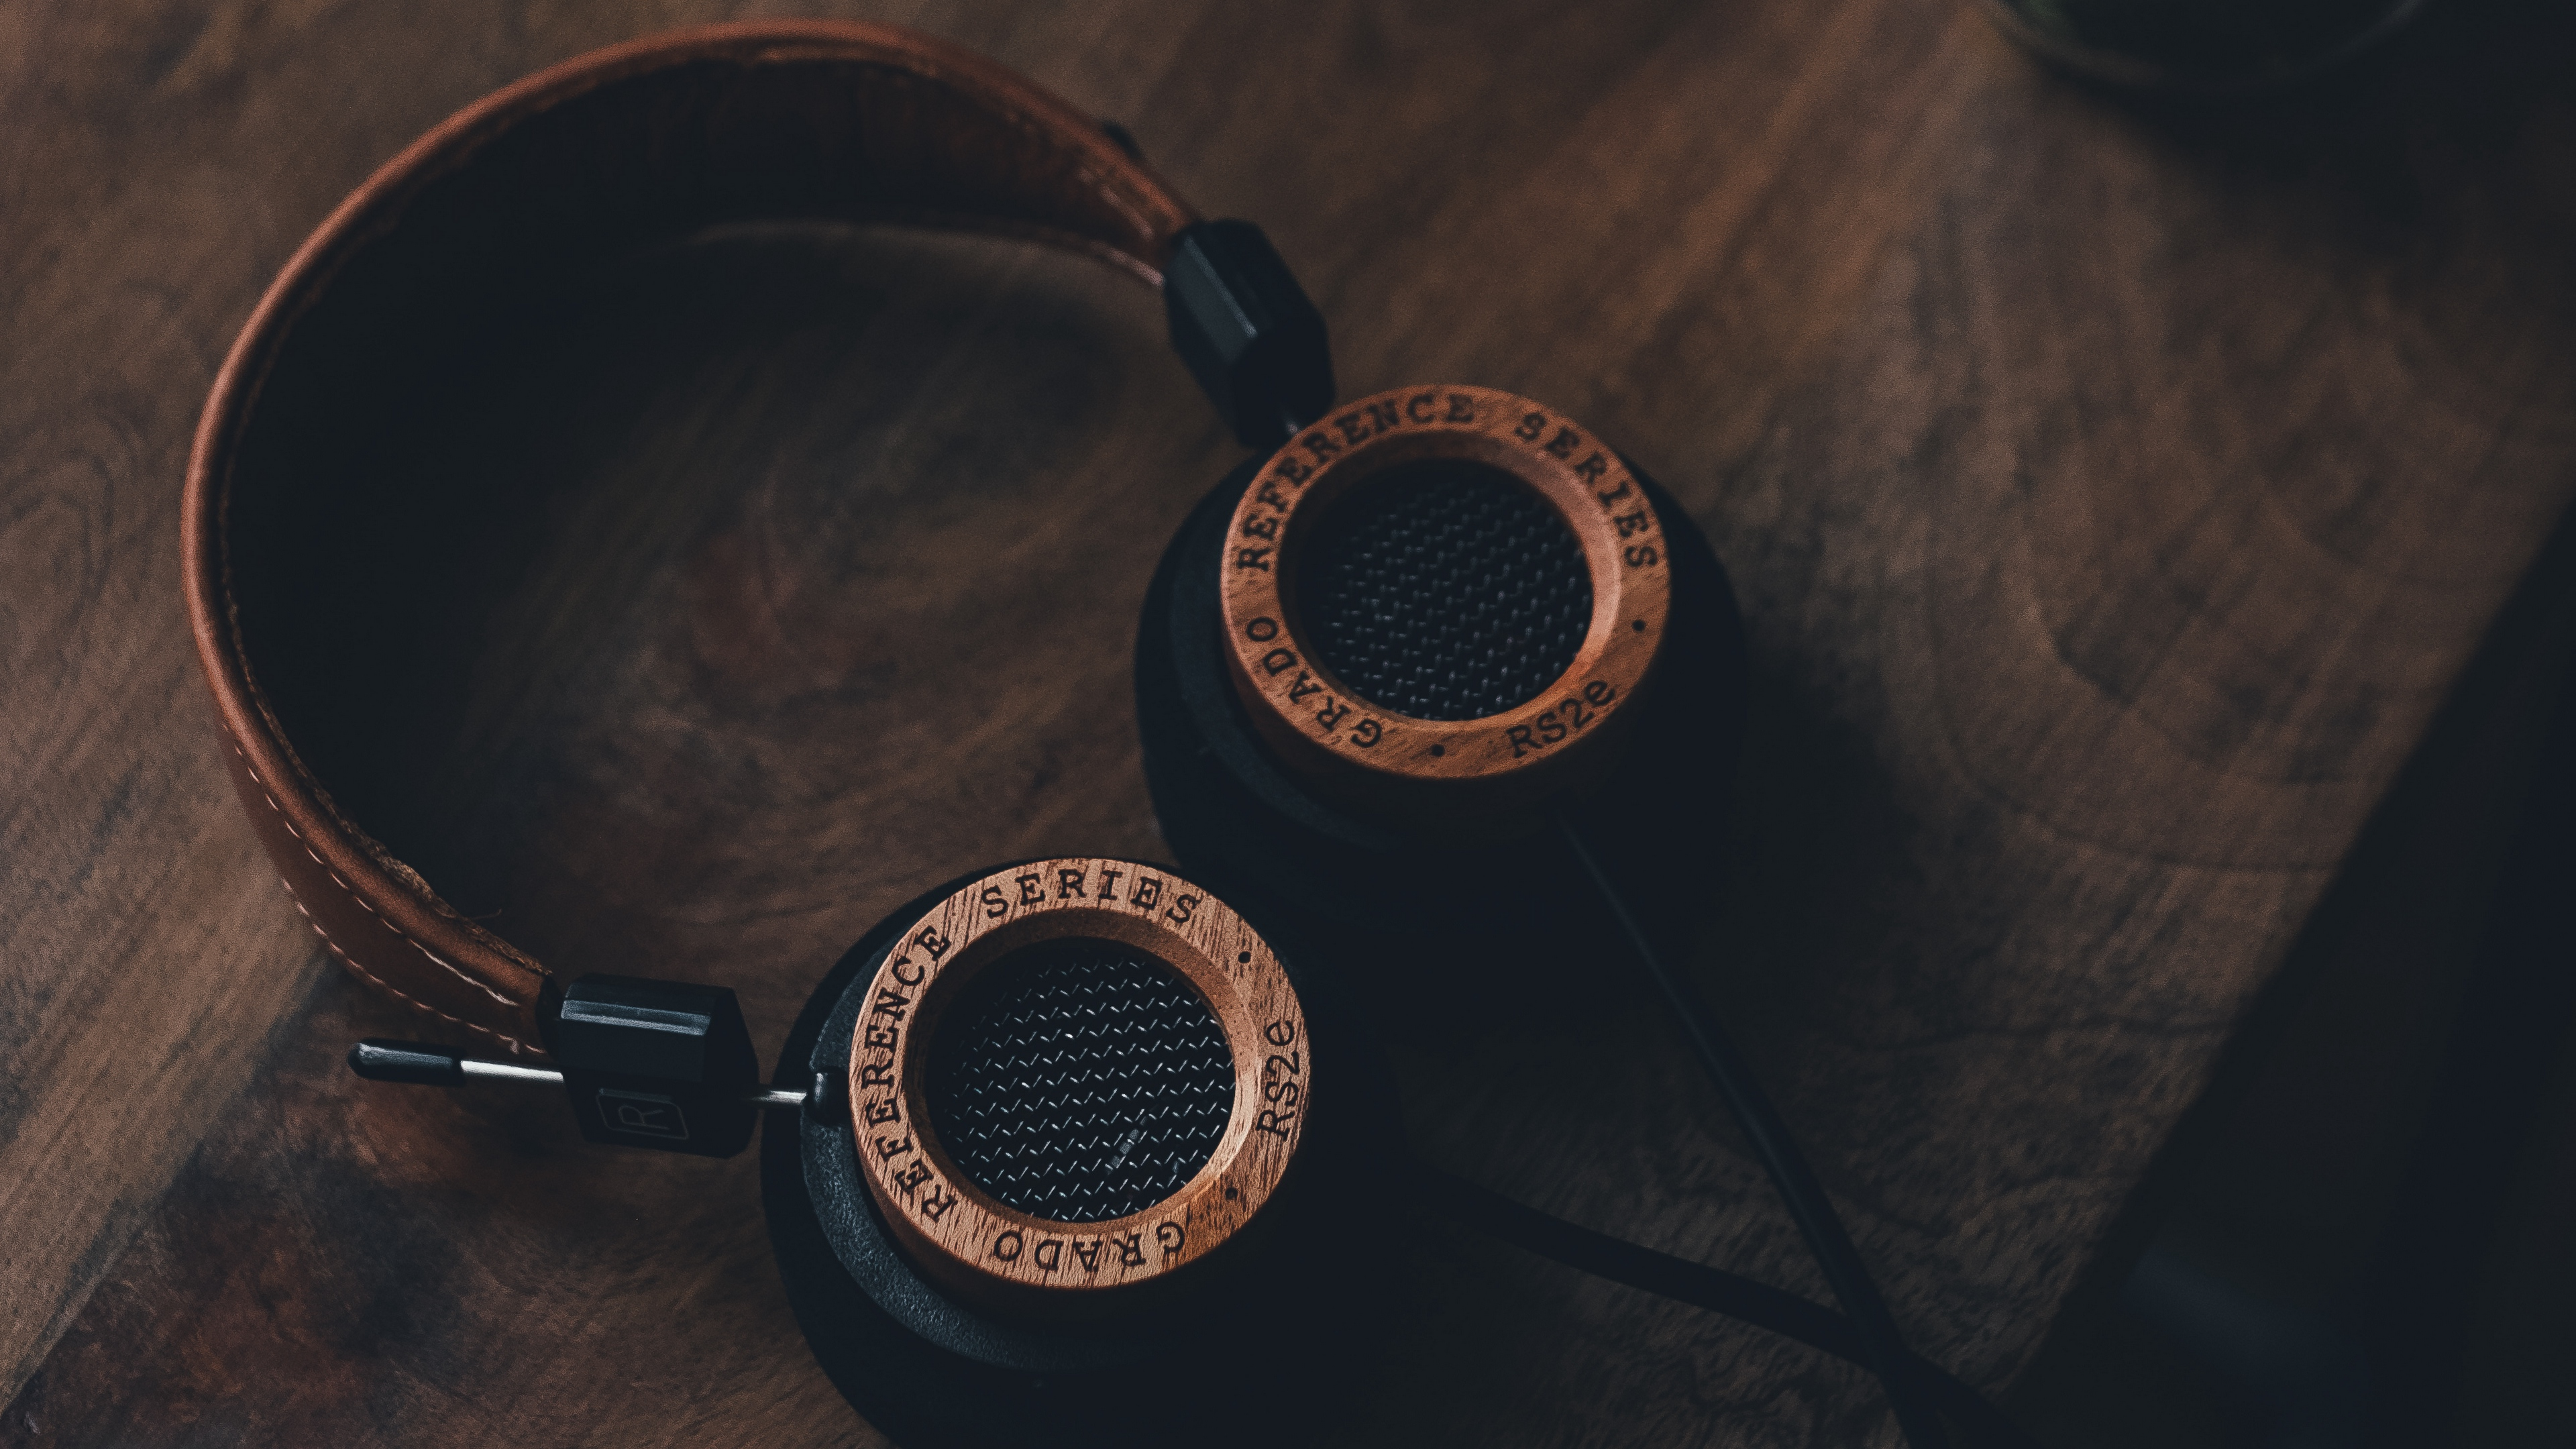 A high-end pair of headphones can be a cheaper way to get great sound